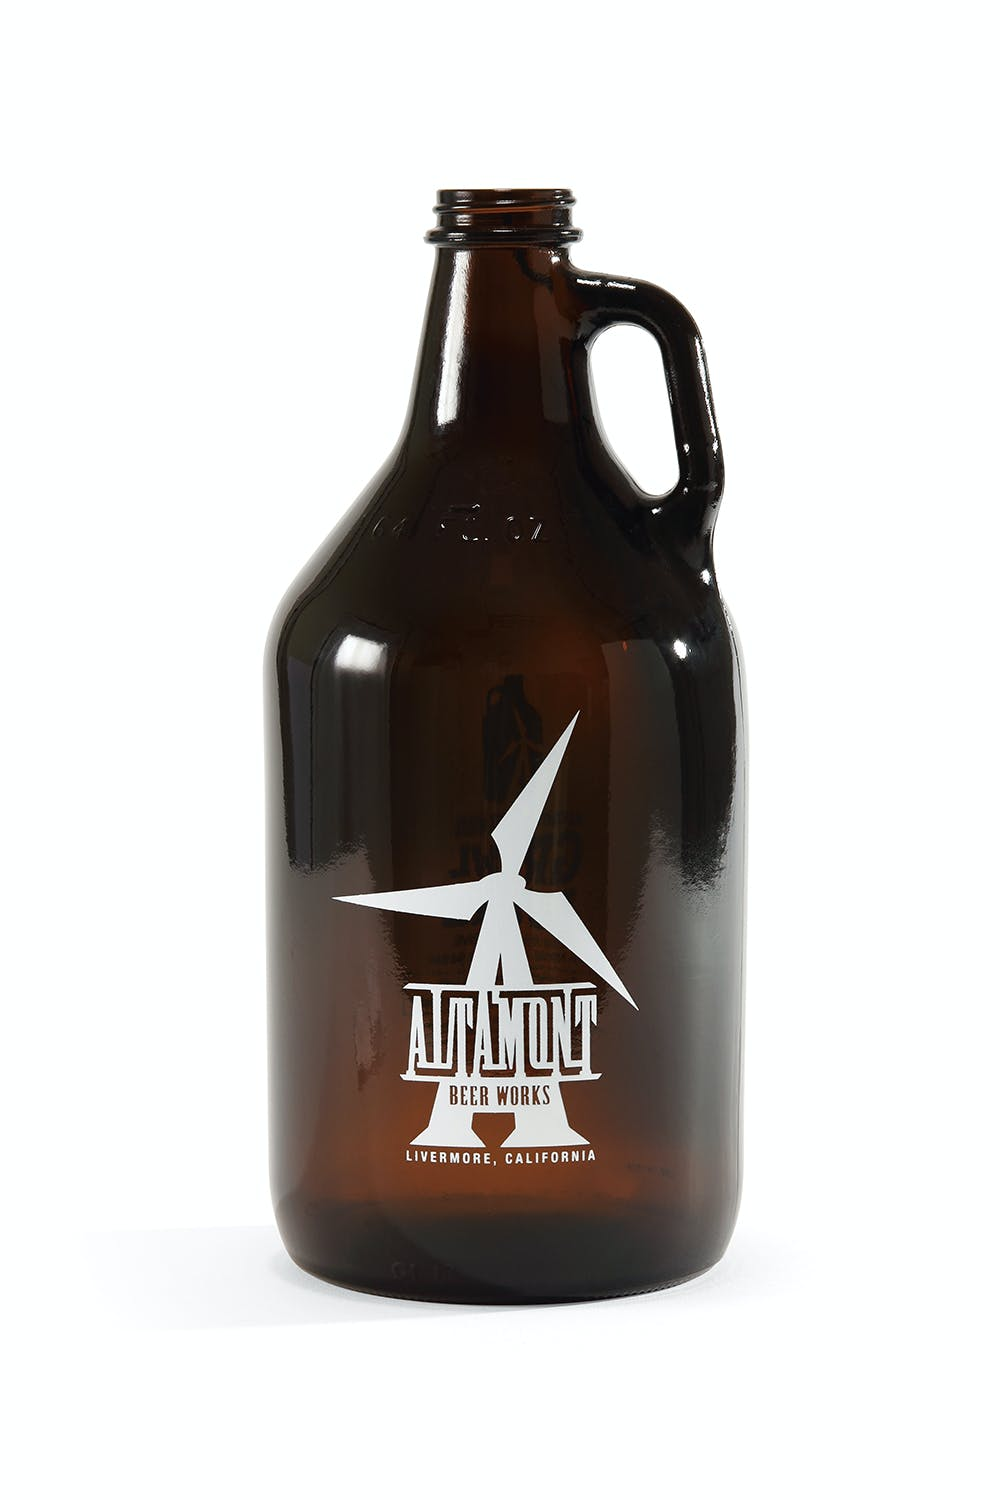 Screen Printed Growlers Beer bottle sold by Bottleprint